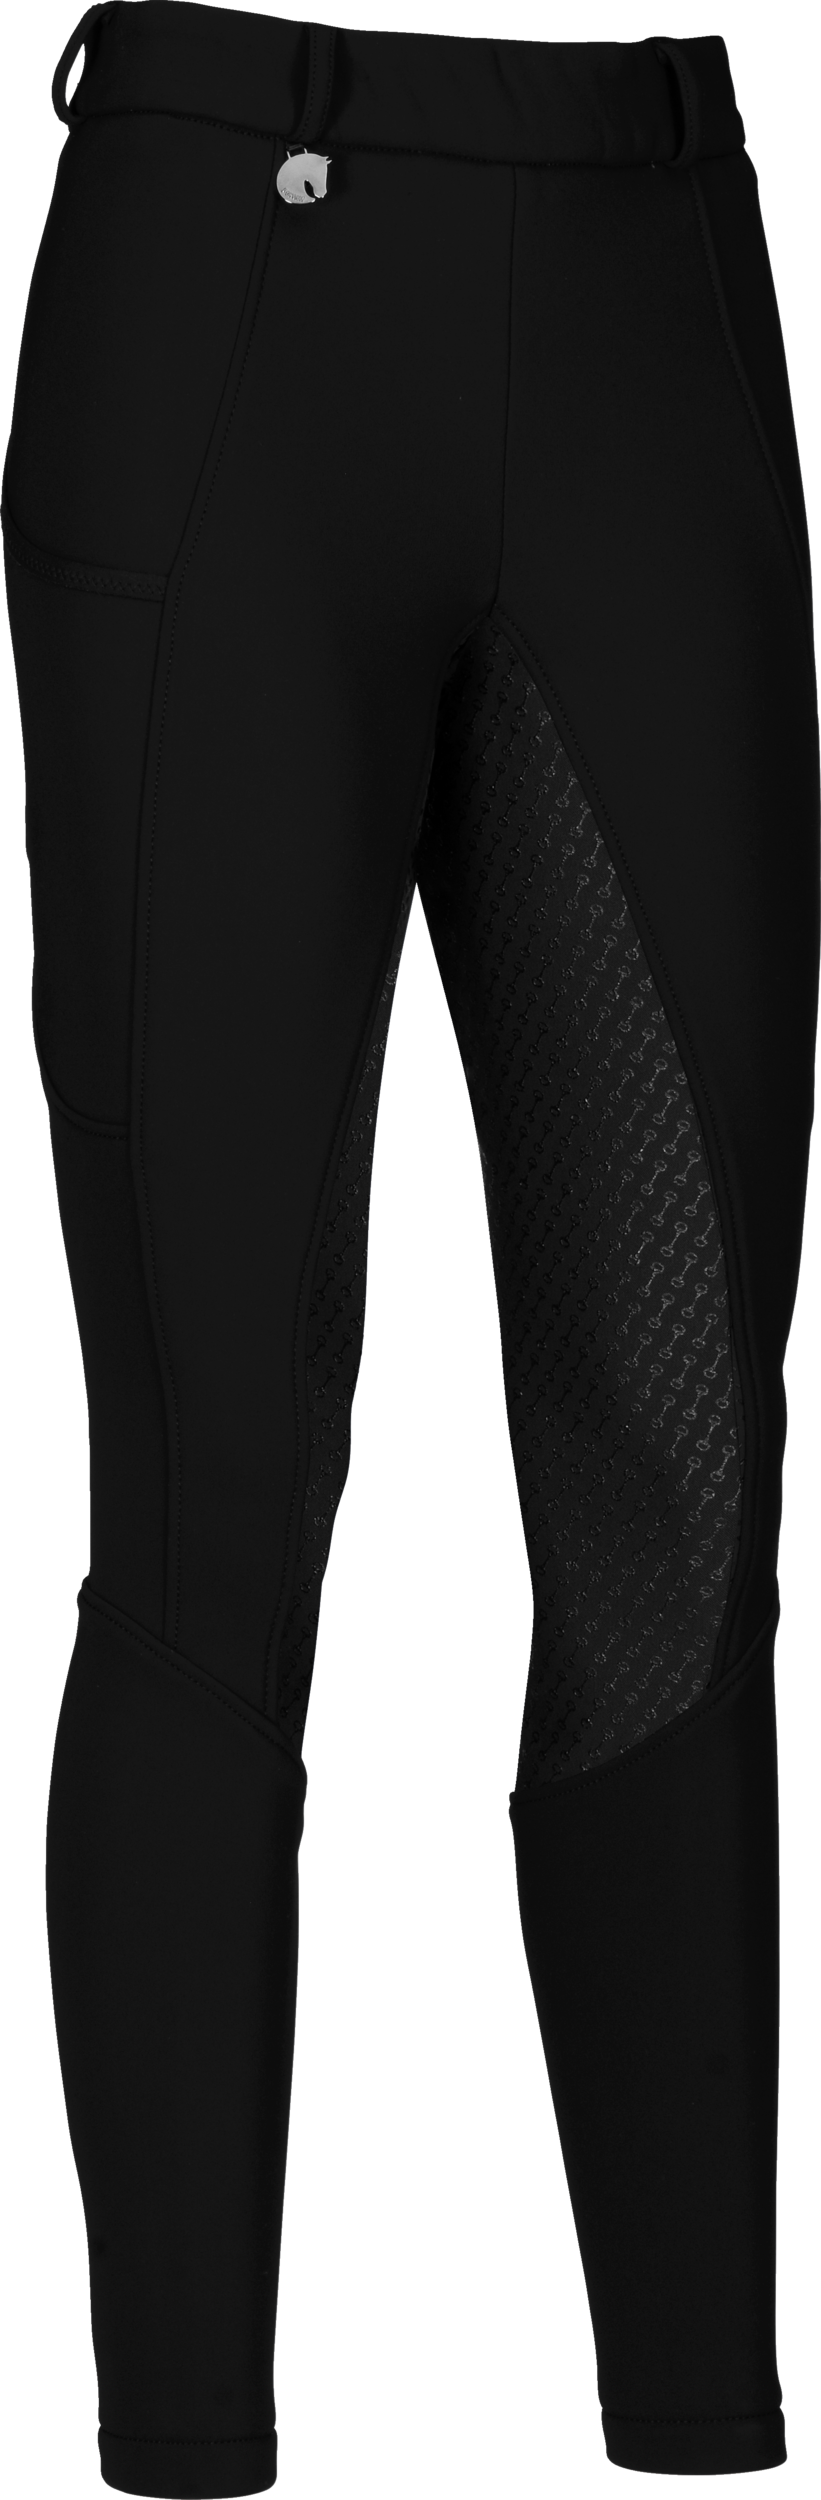 KIMA GRIP ATHLEISURE